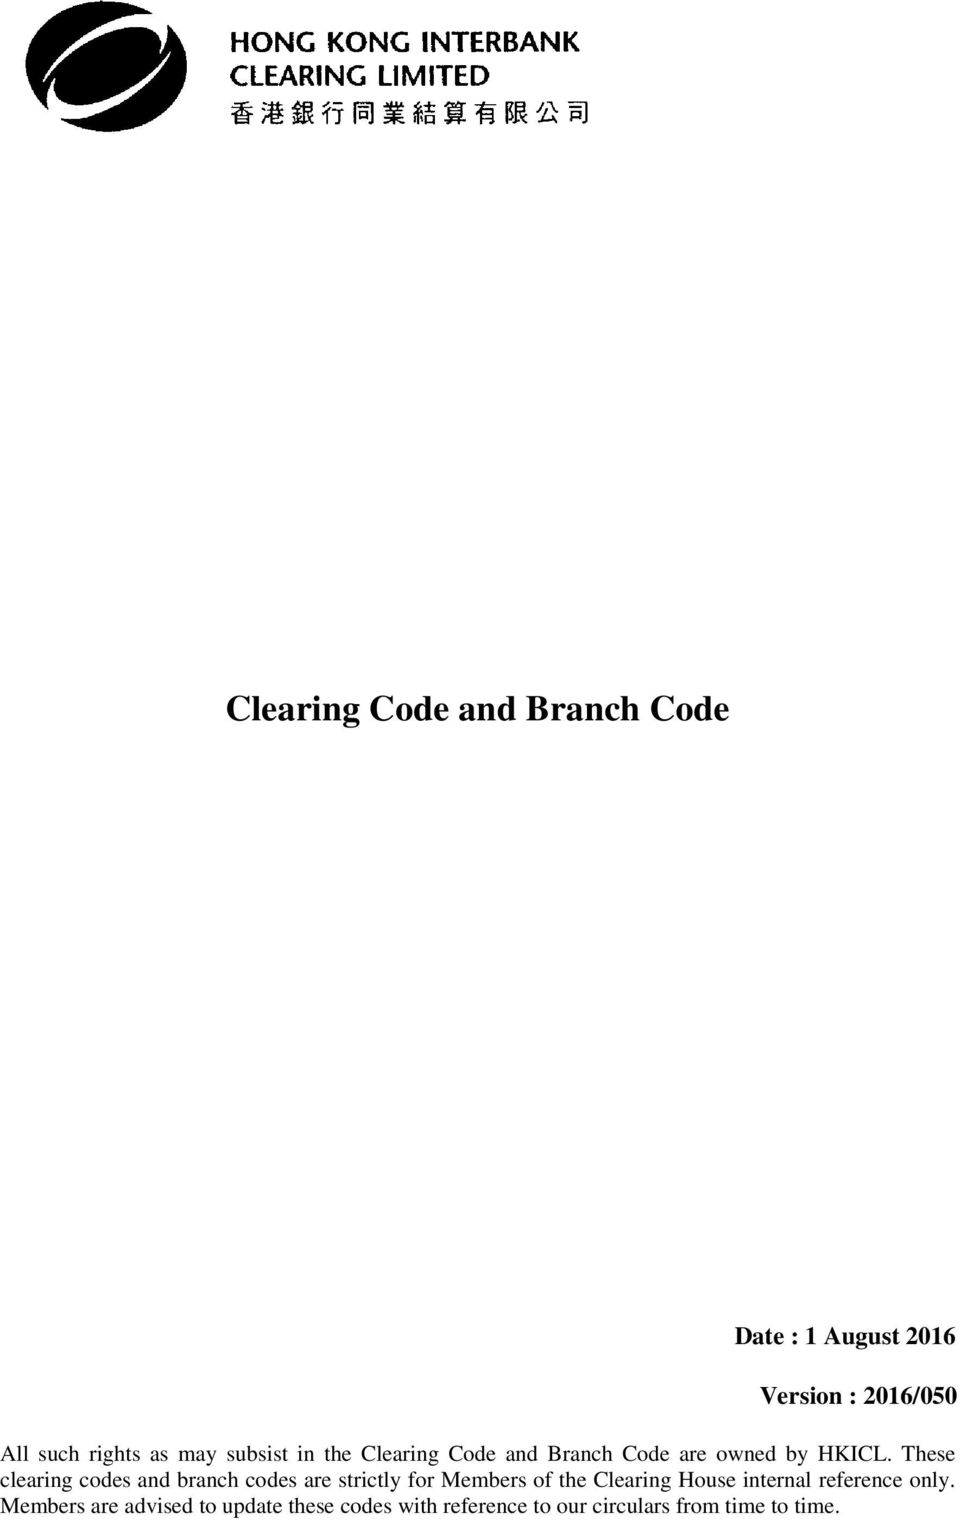 These clearing codes and branch codes are strictly for Members of the Clearing